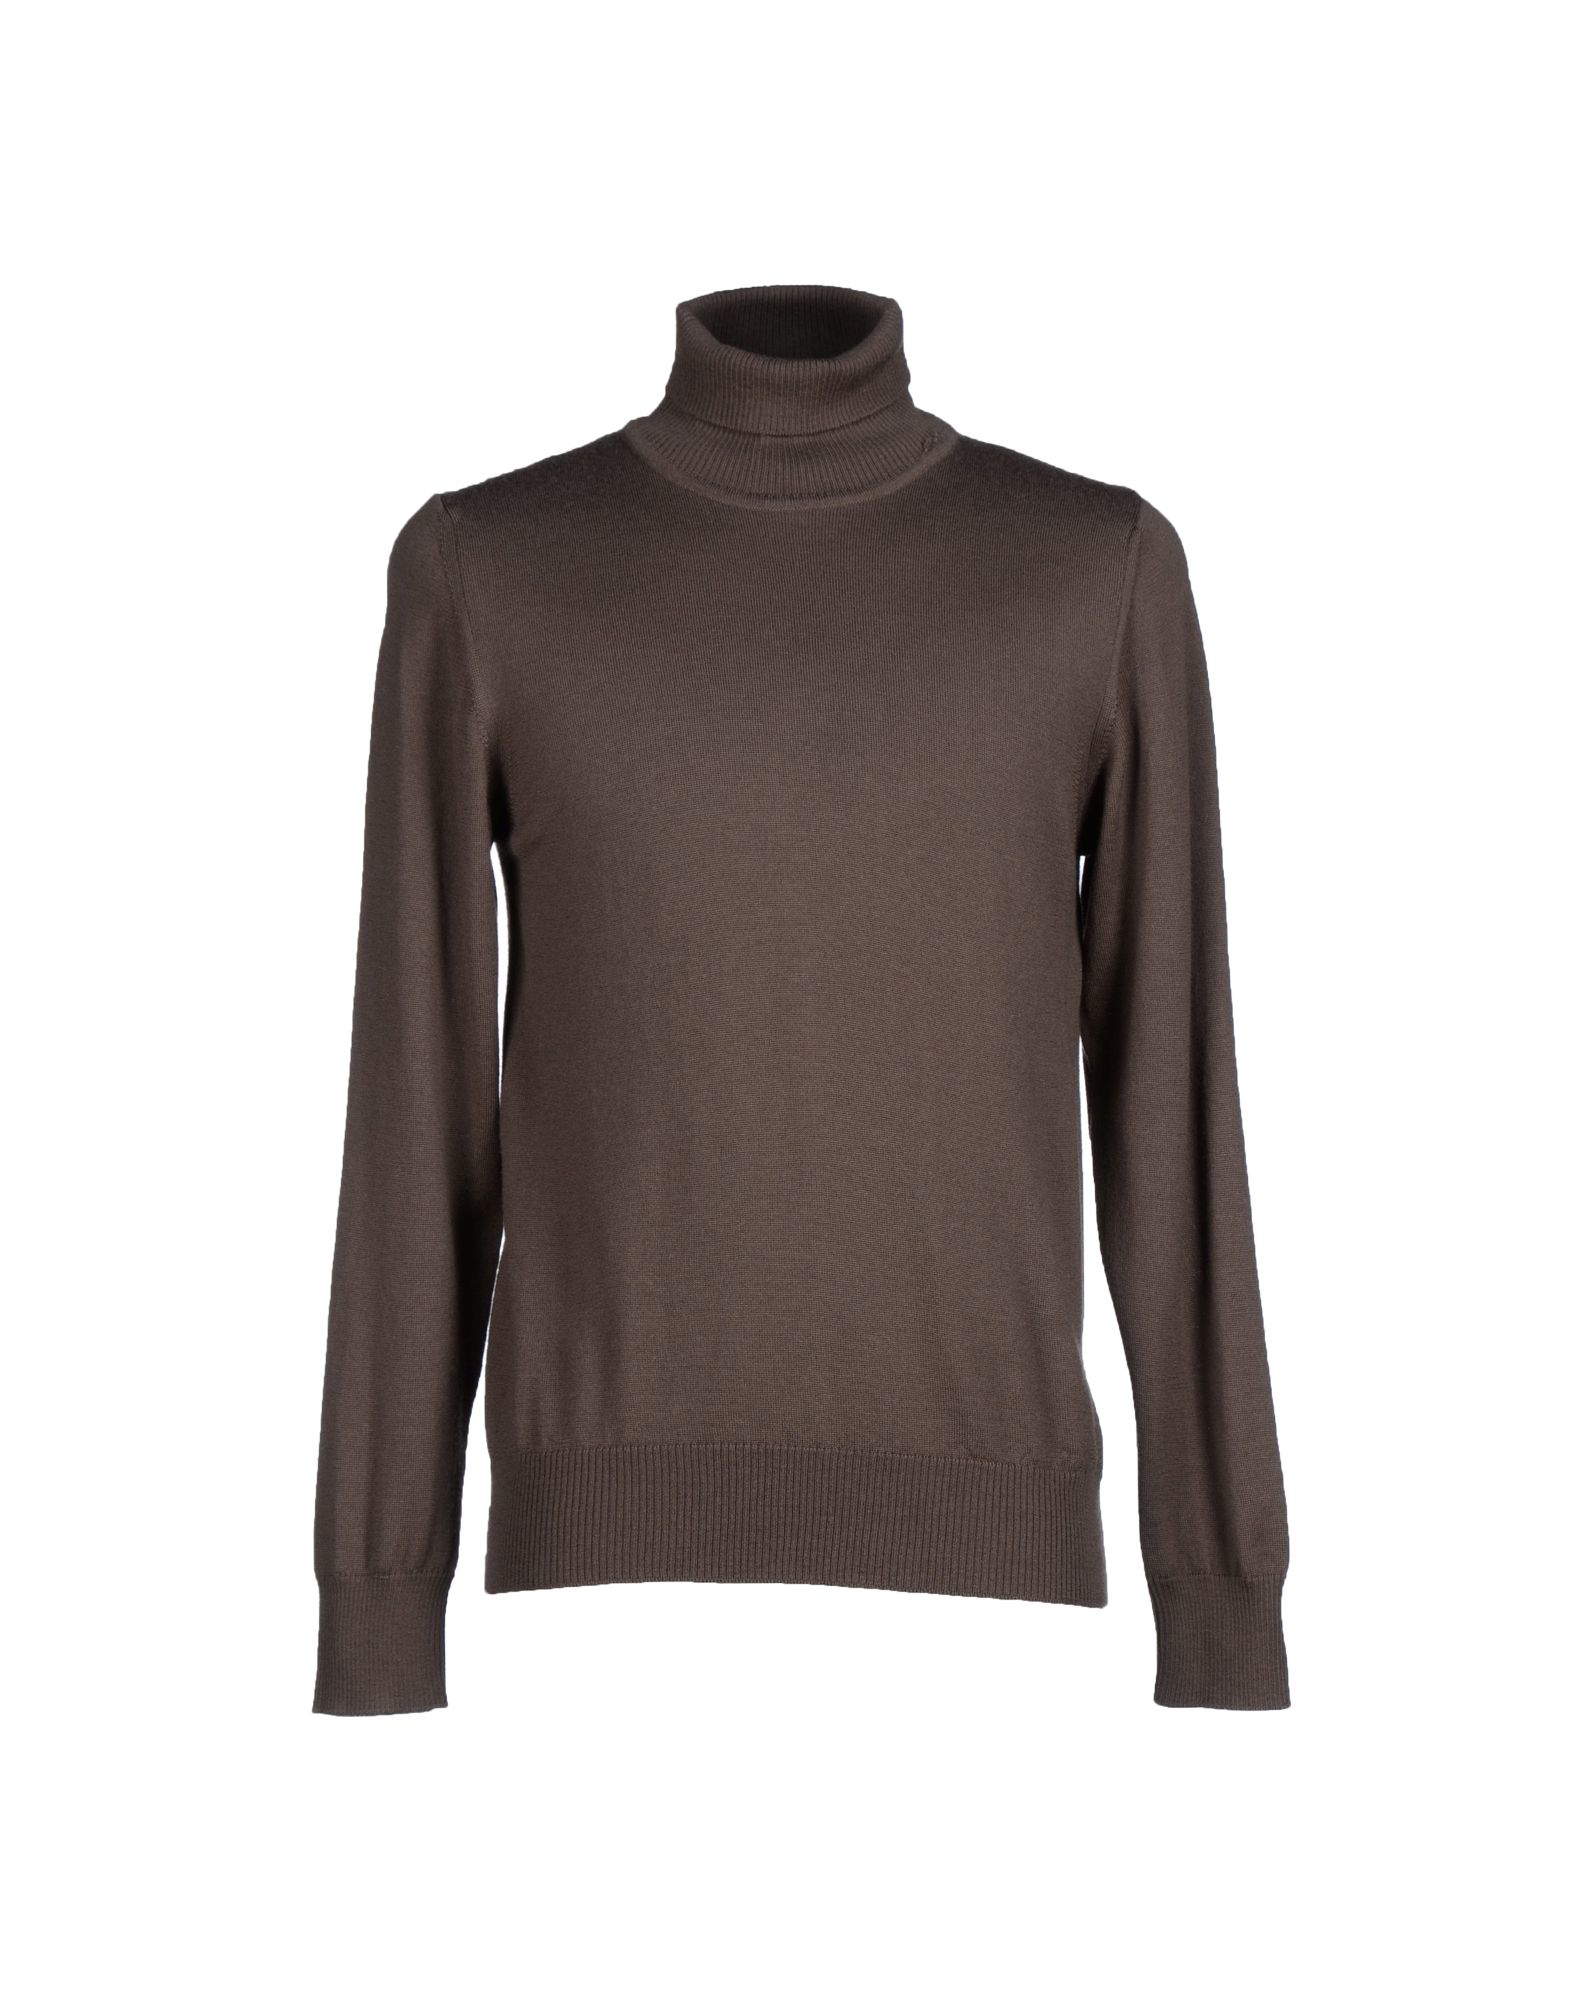 Find dark brown turtleneck at ShopStyle. Shop the latest collection of dark brown turtleneck from the most popular stores - all in one place.